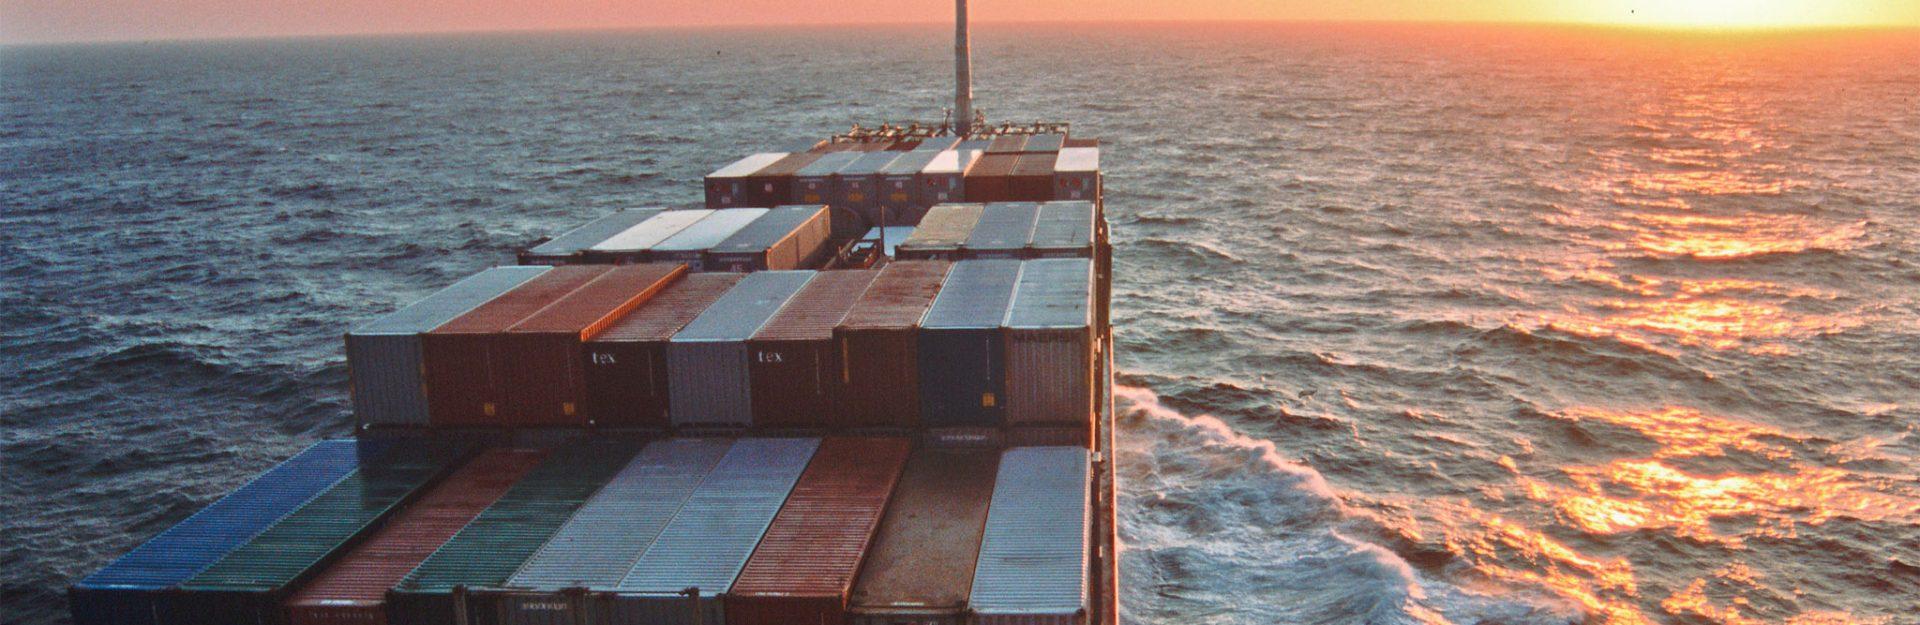 Marine Products & Services